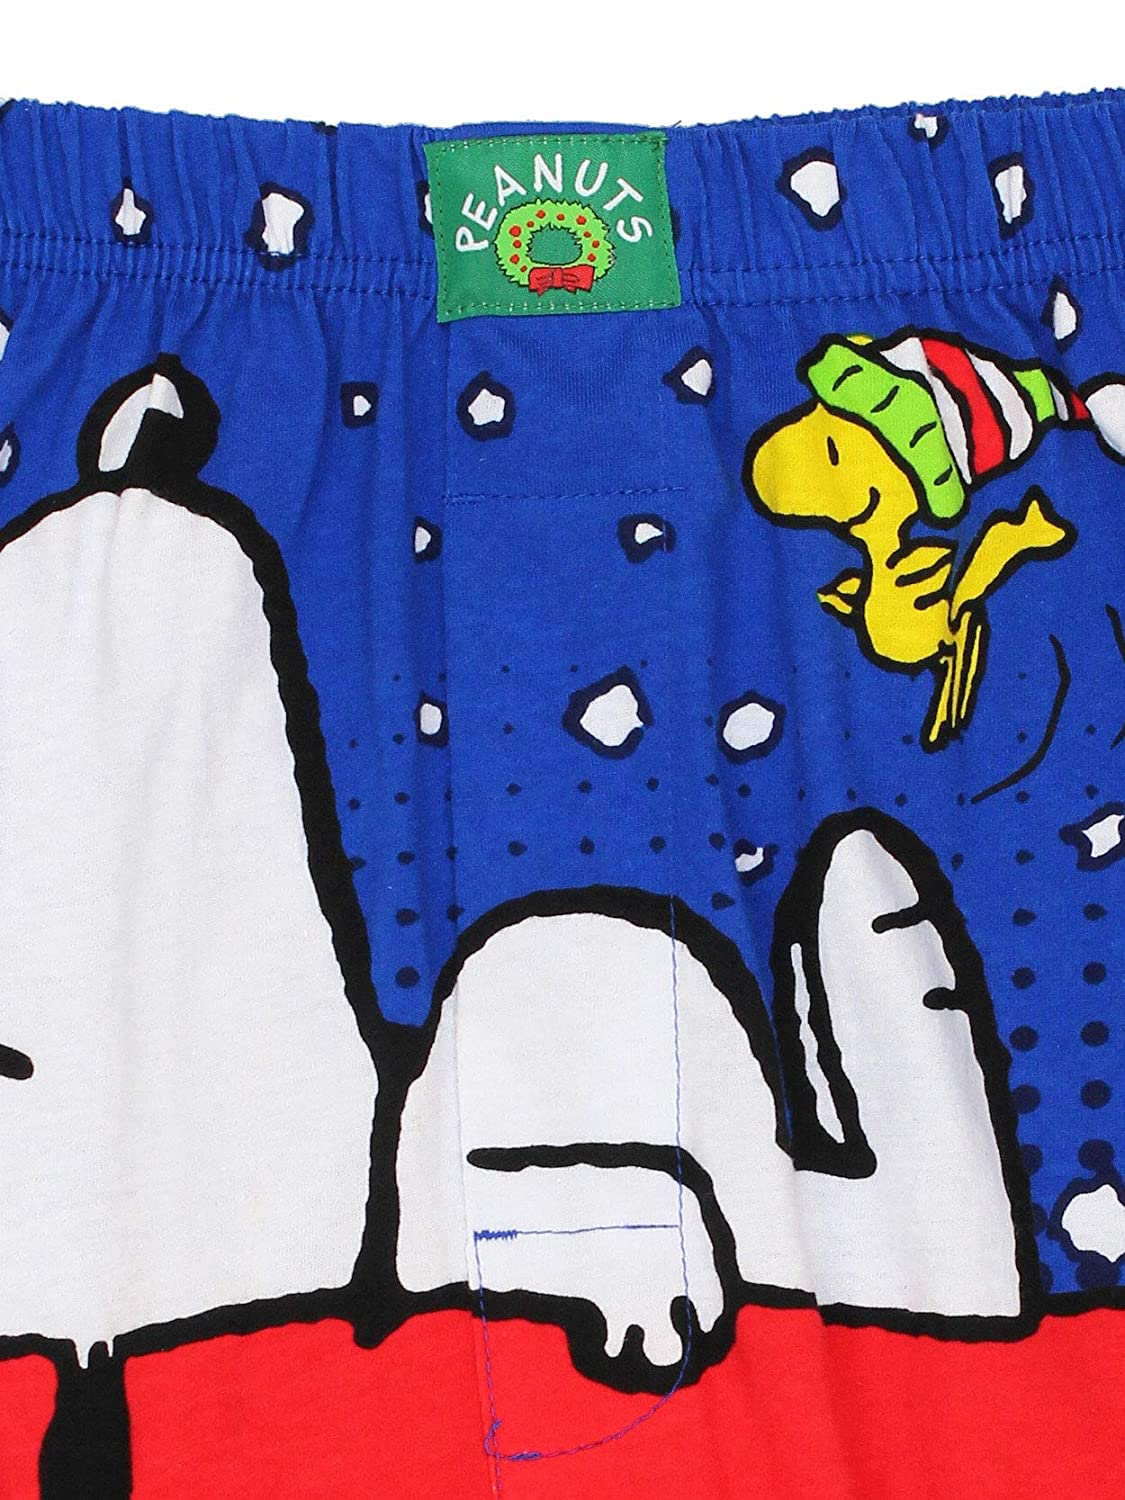 cc5ae12d8049 ... Peanuts Snoopy Woodstock Mens Christmas Holiday Boxer Shorts Underwear  manufacturer ...